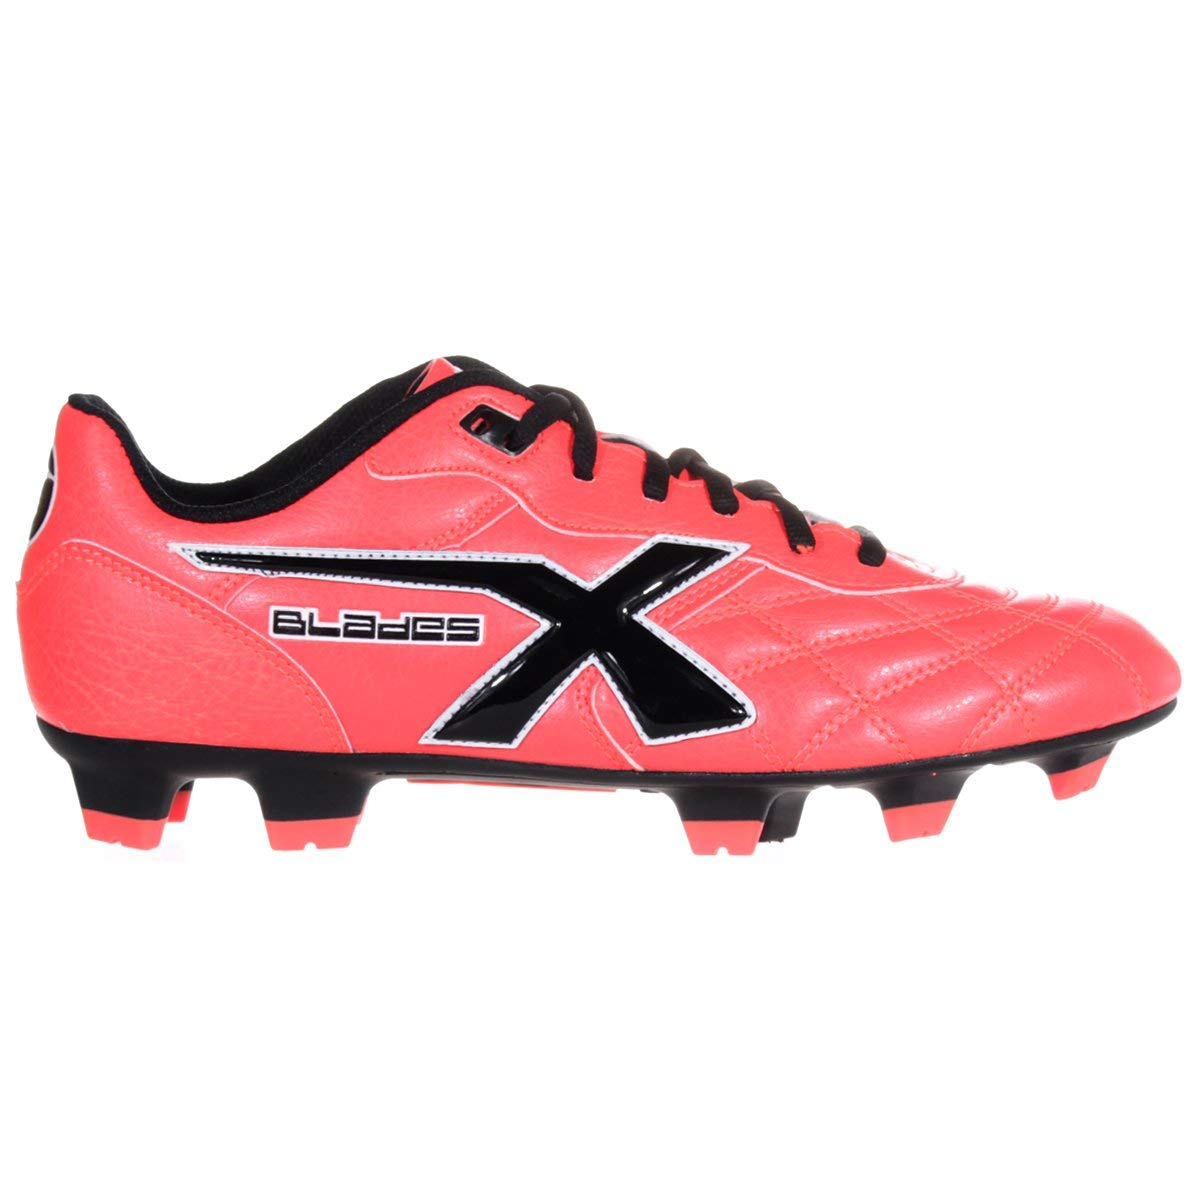 86beab3e5dc Buy X BLADES Wild Thing Animal Blades Rugby Boot Mens - Yellow ...